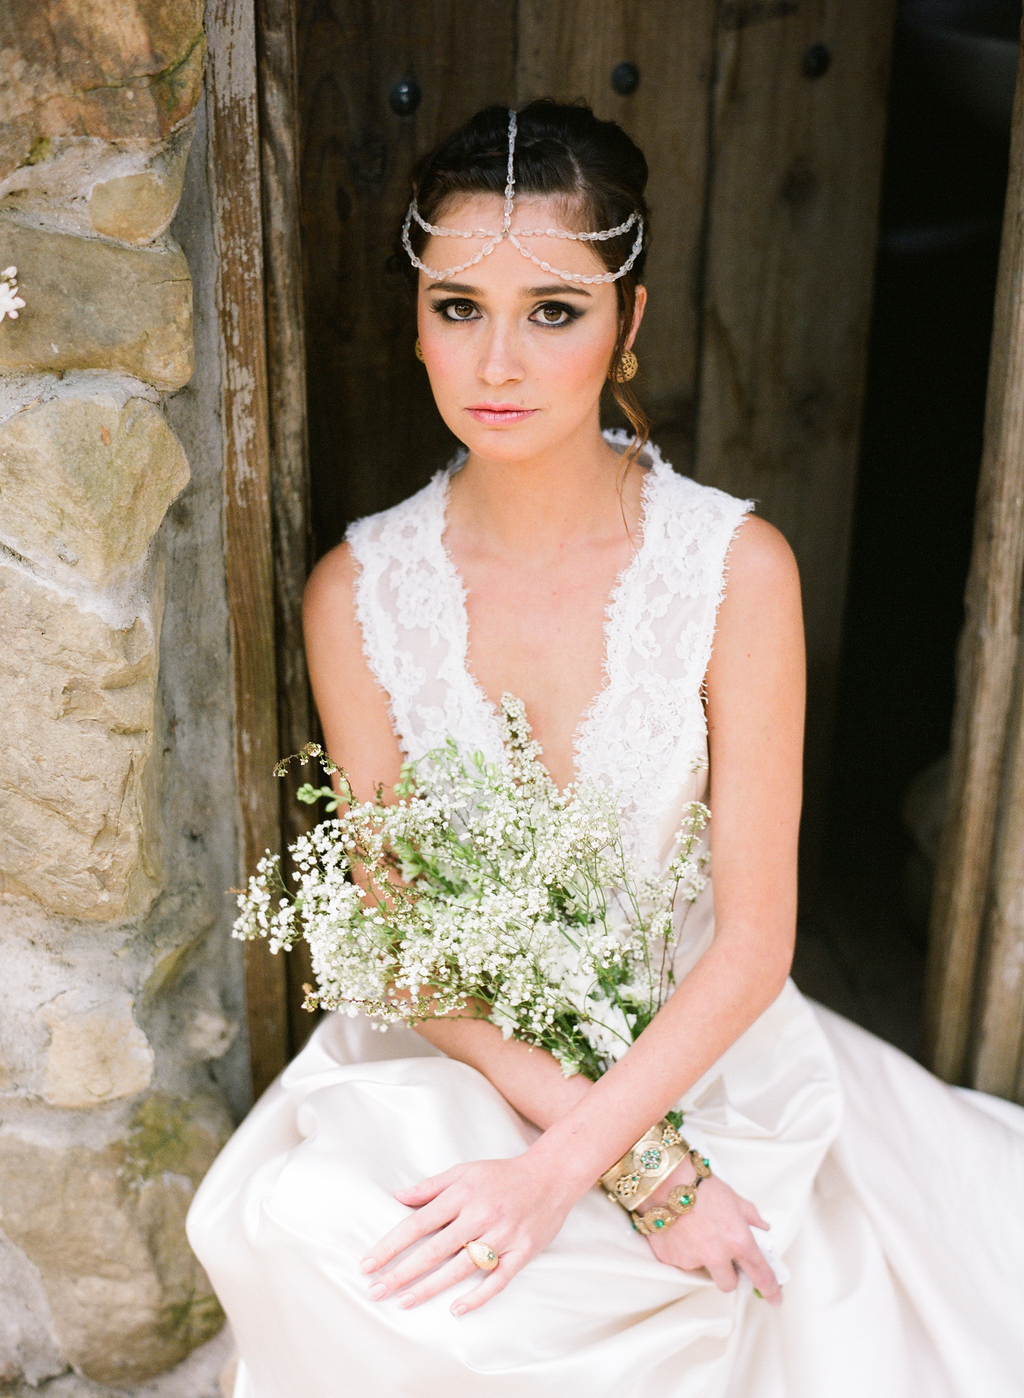 Styled-wedding-santa-barbara-chic-beaux-arts-photographie-italian-bohemian-wedding-bride-wedding-dress-lace-white-flowers-bouquet-052.full